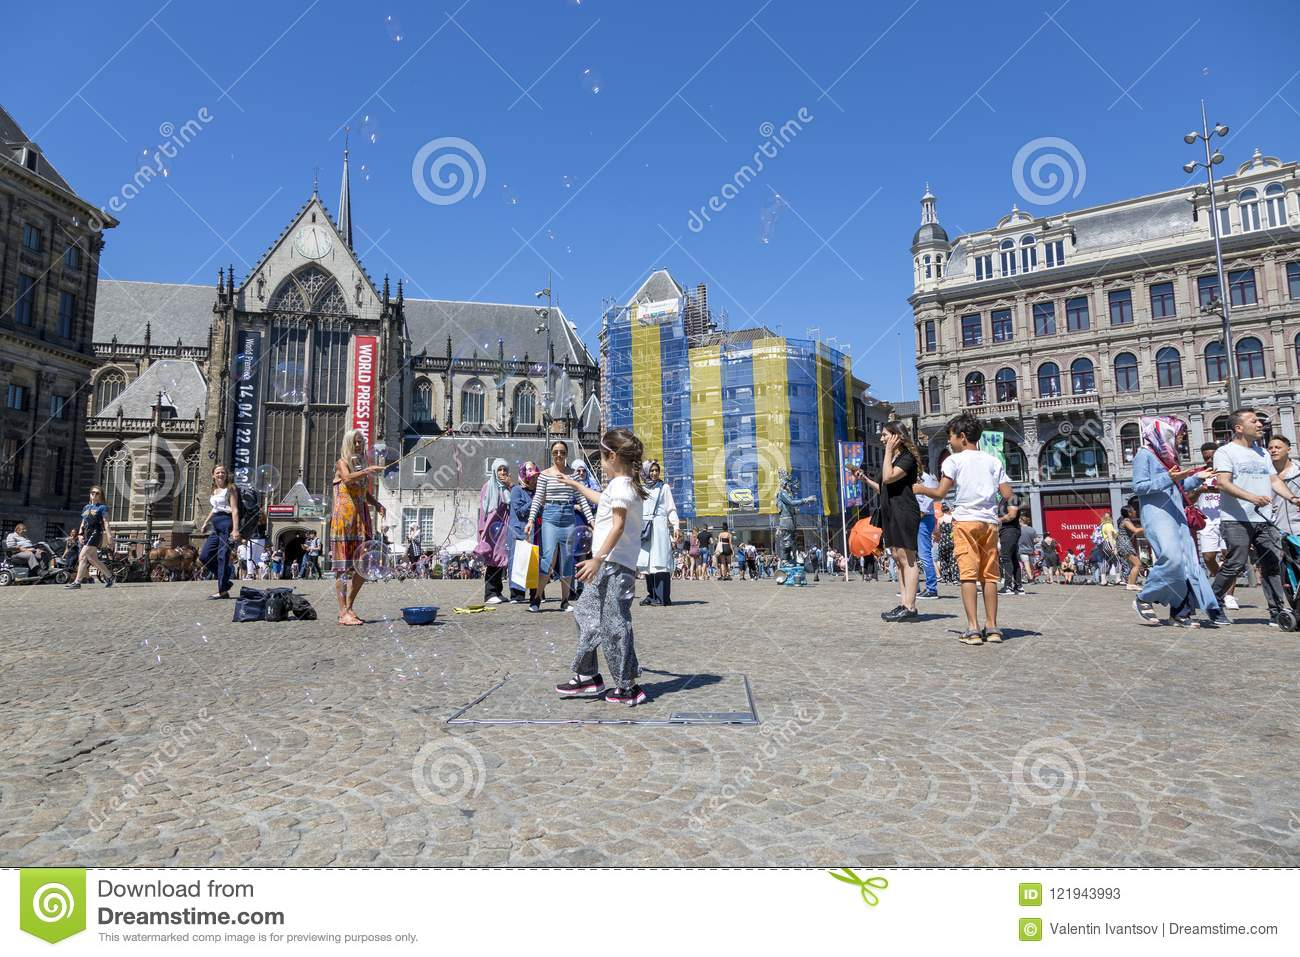 Children catch soap bubbles in the central Dam Square in Amsterdam